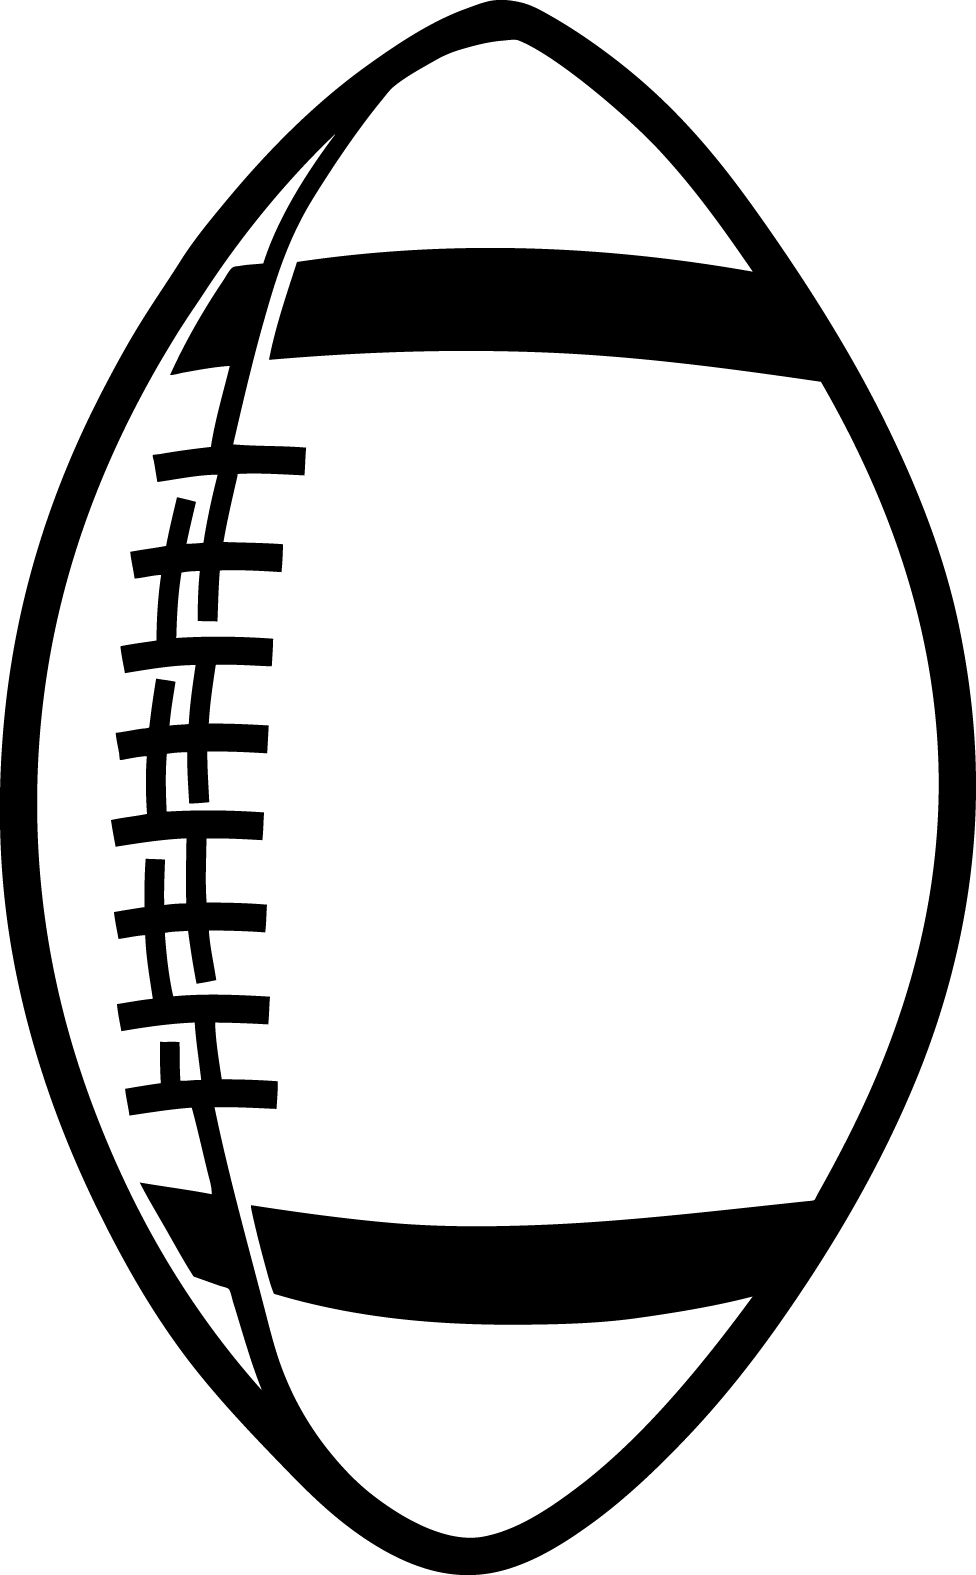 Dragonfly outline panda free. Football heart clipart black and white